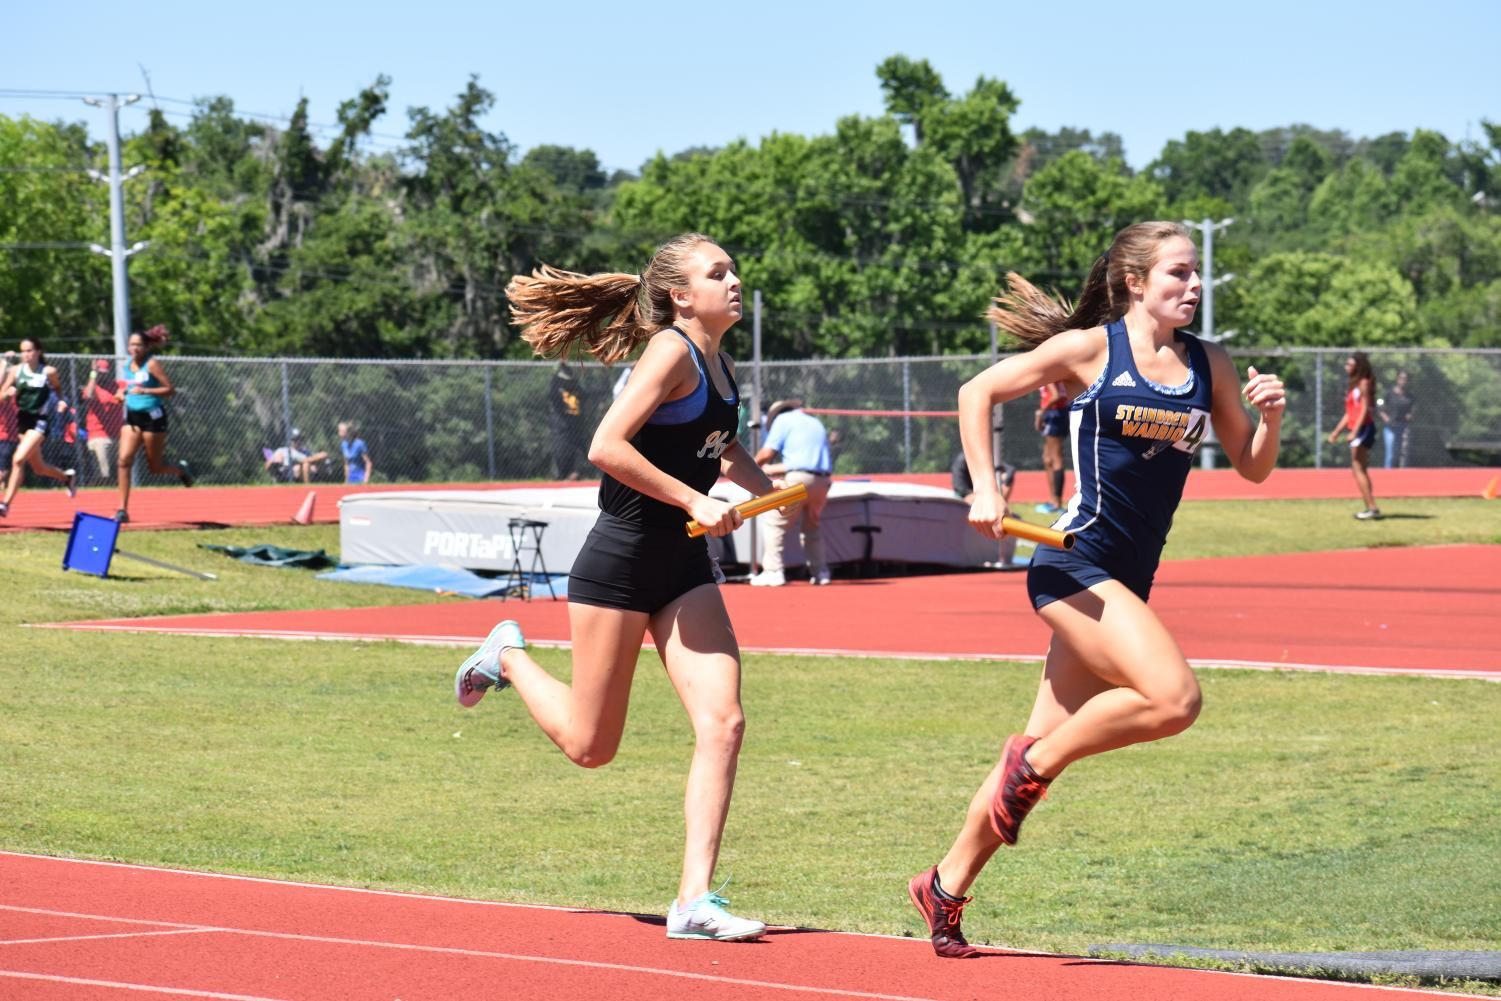 Keeping+her+eyes+on+the+runner+ahead%2C+junior+Elizabeth+Eudaly+sprints+her+last+lap+of+the+4x800+at+regionals+April+27+at+George+Jenkins+High+School.+Eudaly+raced+another+800-meter+later+in+the+day%2C+finishing+third+and+qualifying+for+states.+